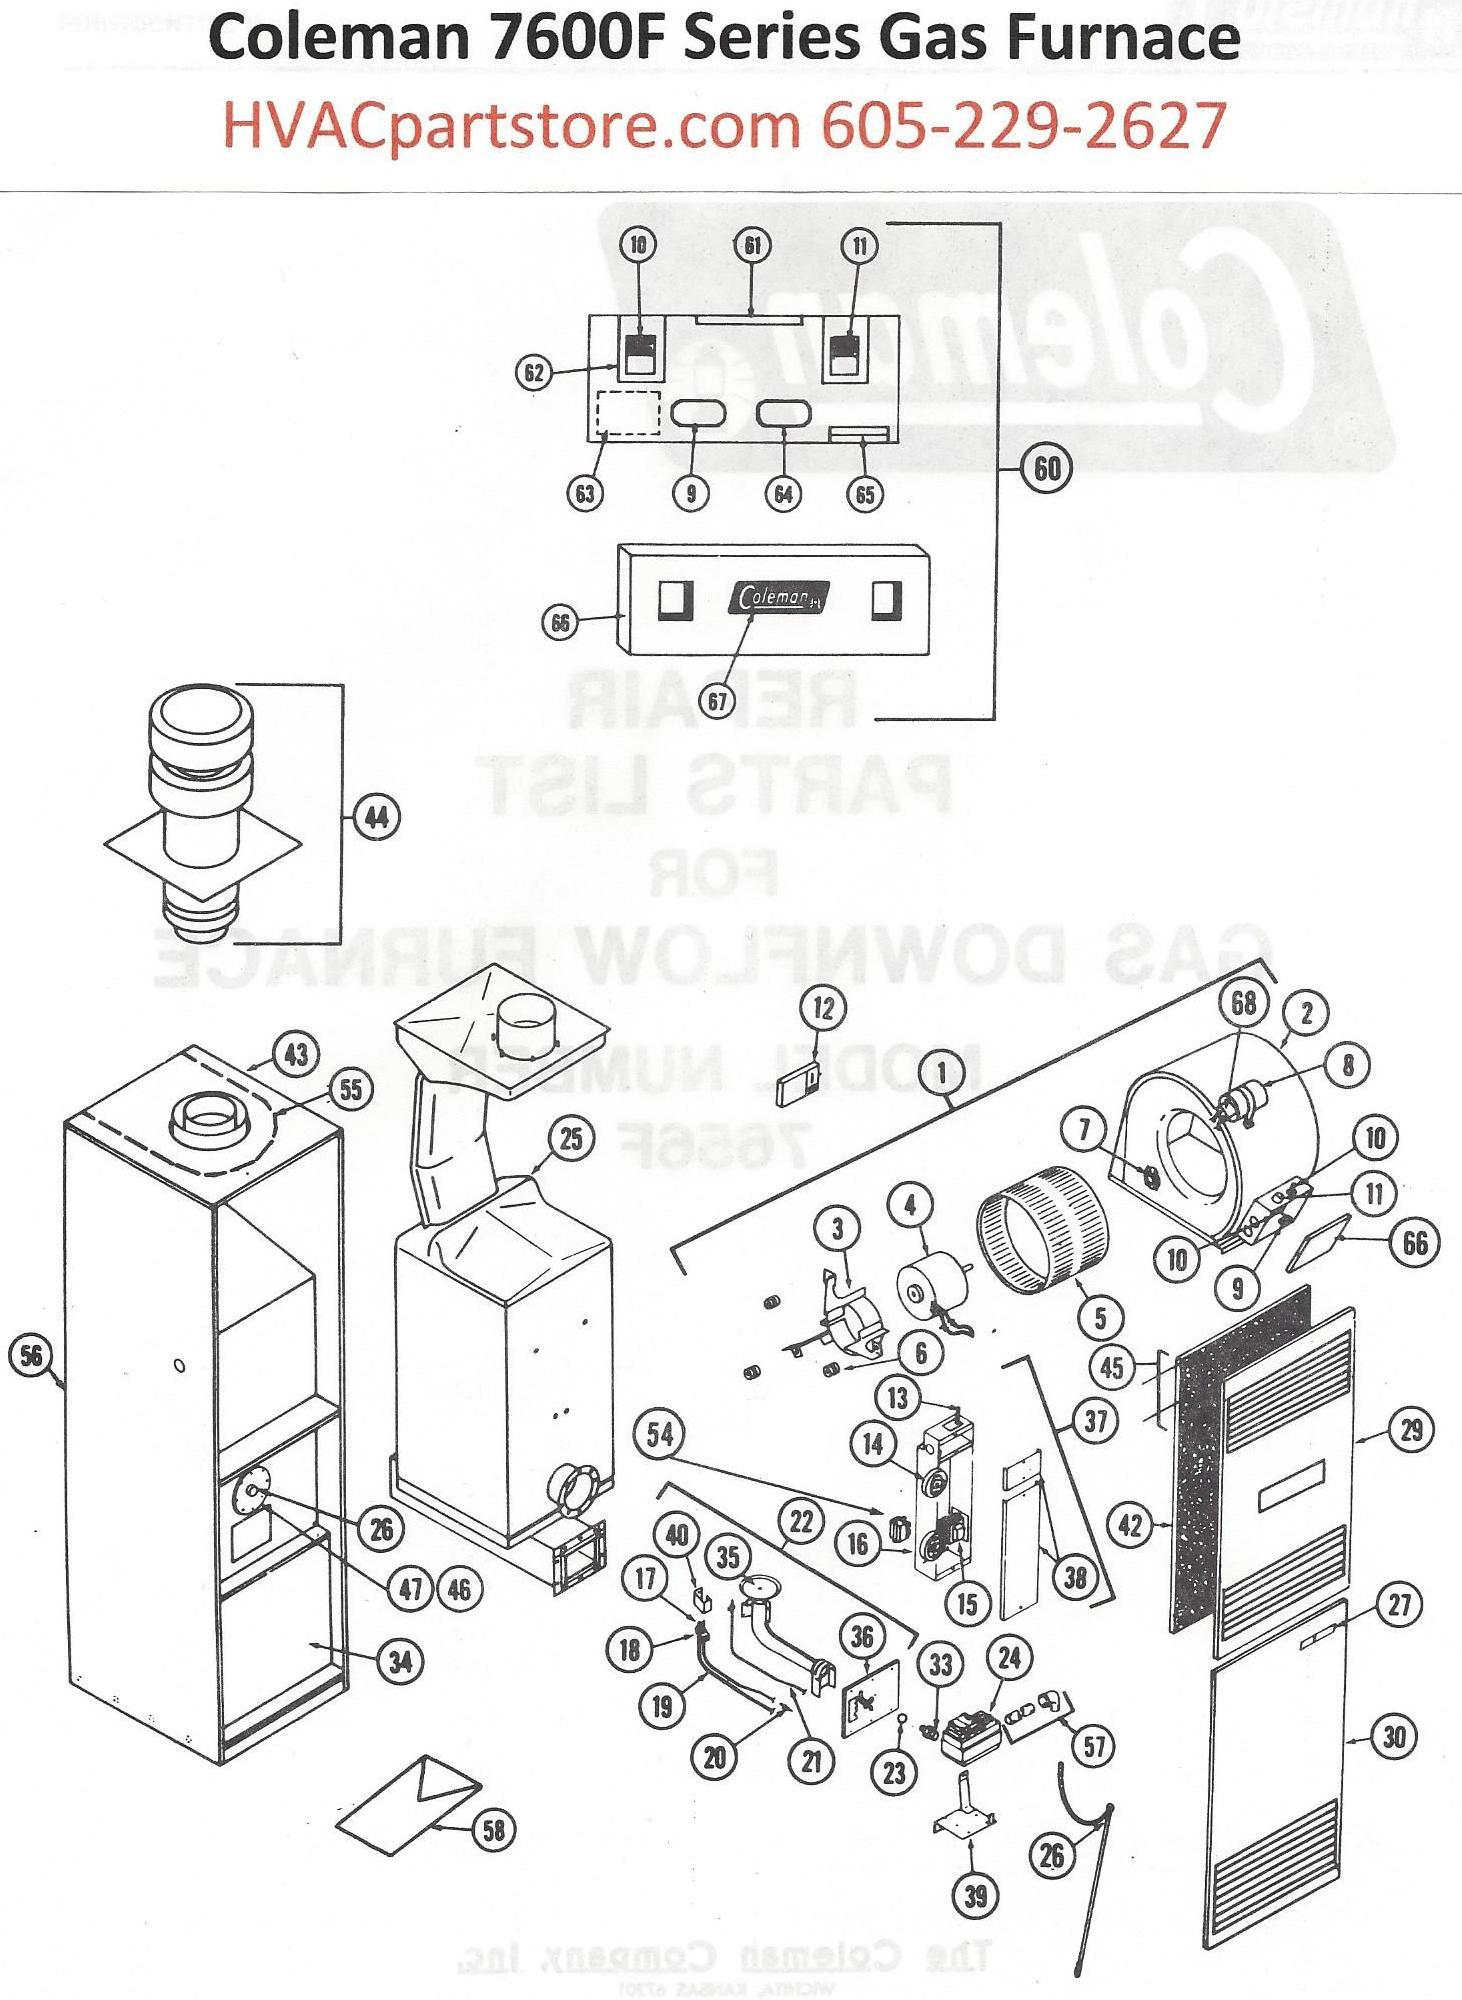 [EO_7990] Furnace Wiring Diagram Moreover Coleman Gas